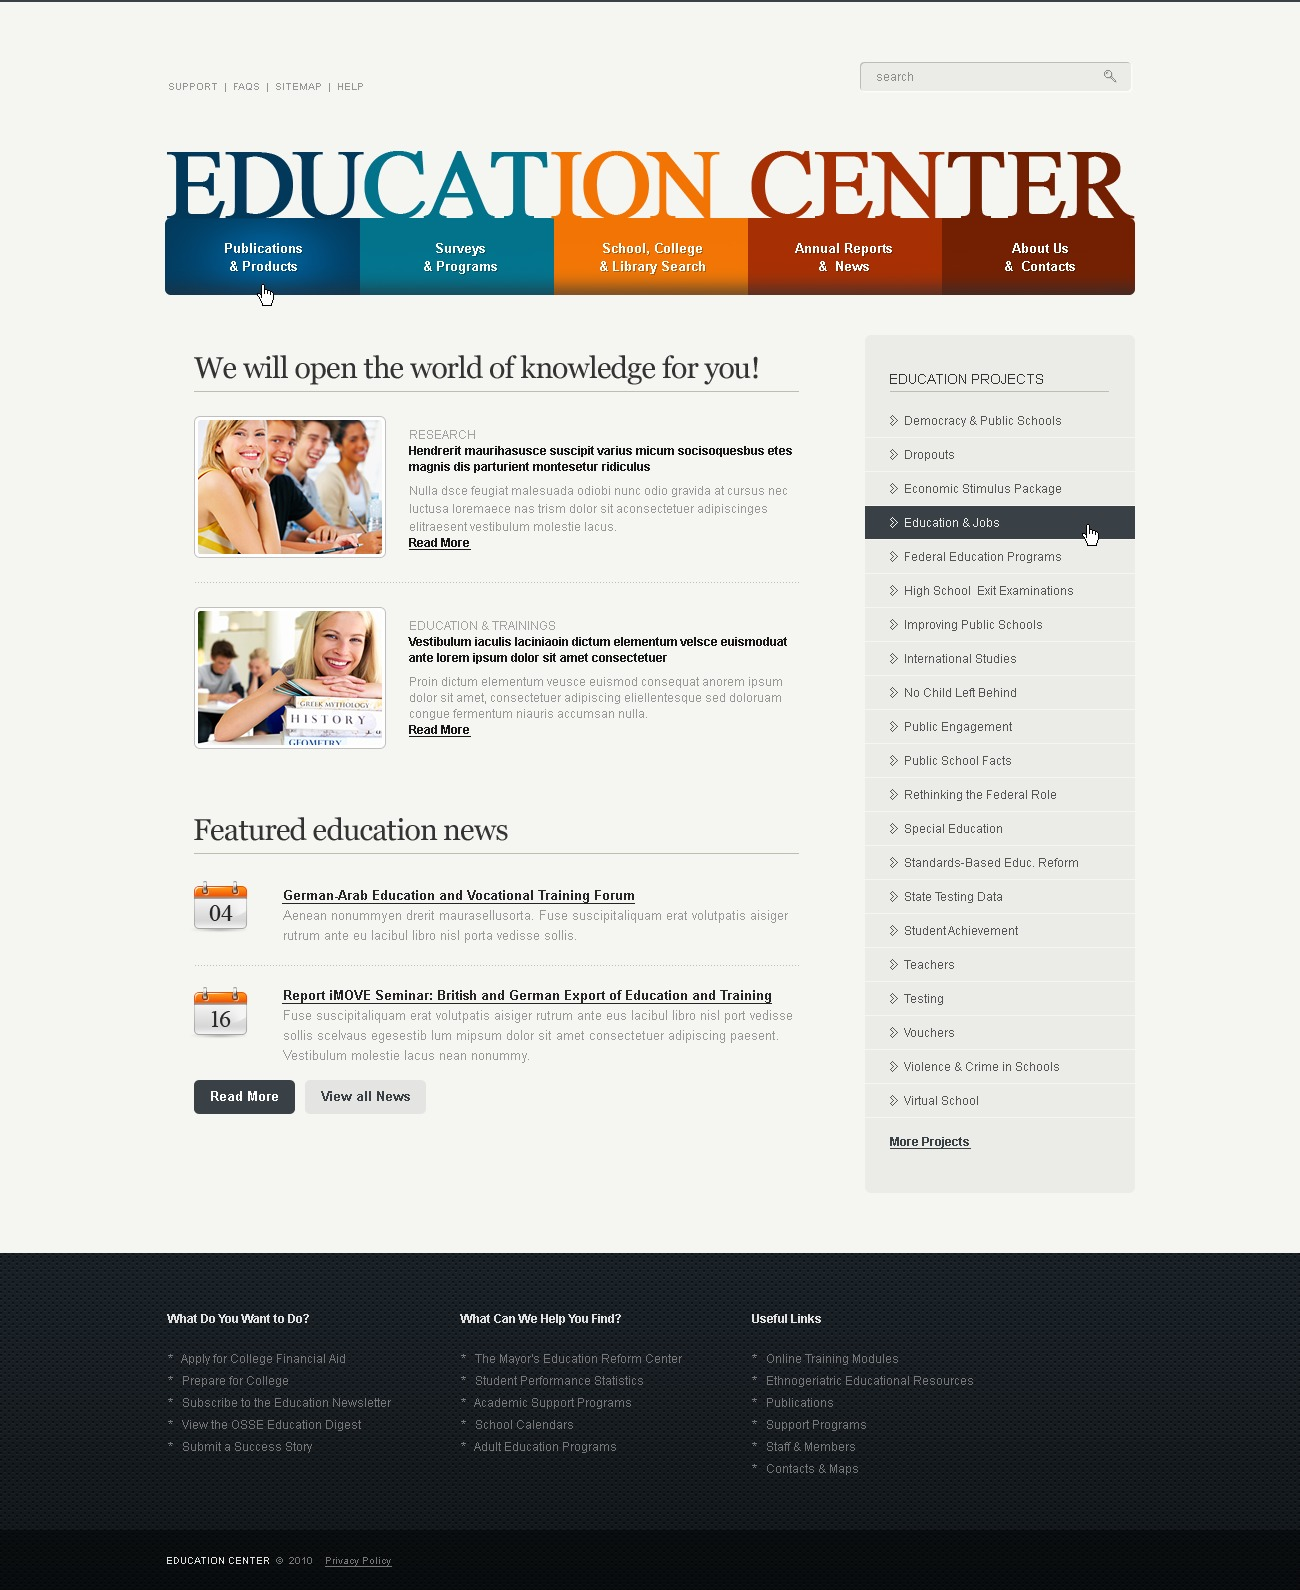 The Education Center PSD Design 54082, one of the best PSD templates of its kind (education, wide), also known as education center PSD template, college PSD template, science PSD template, admission PSD template, faculty PSD template, department PSD template, class PSD template, alumni PSD template, student PSD template, professor PSD template, enrollment PSD template, union PSD template, library PSD template, auditorium PSD template, graduate PSD template, direction PSD template, tests PSD template, entrance PSD template, examination PSD template, exam PSD template, sport PSD template, community PSD template, party PSD template, administration PSD template, rector PSD template, head PSD template, dean PSD template, college and related with education center, college, science, admission, faculty, department, class, alumni, student, professor, enrollment, union, library, auditorium, graduate, direction, tests, entrance, examination, exam, sport, community, party, administration, rector, head, dean, college, etc.